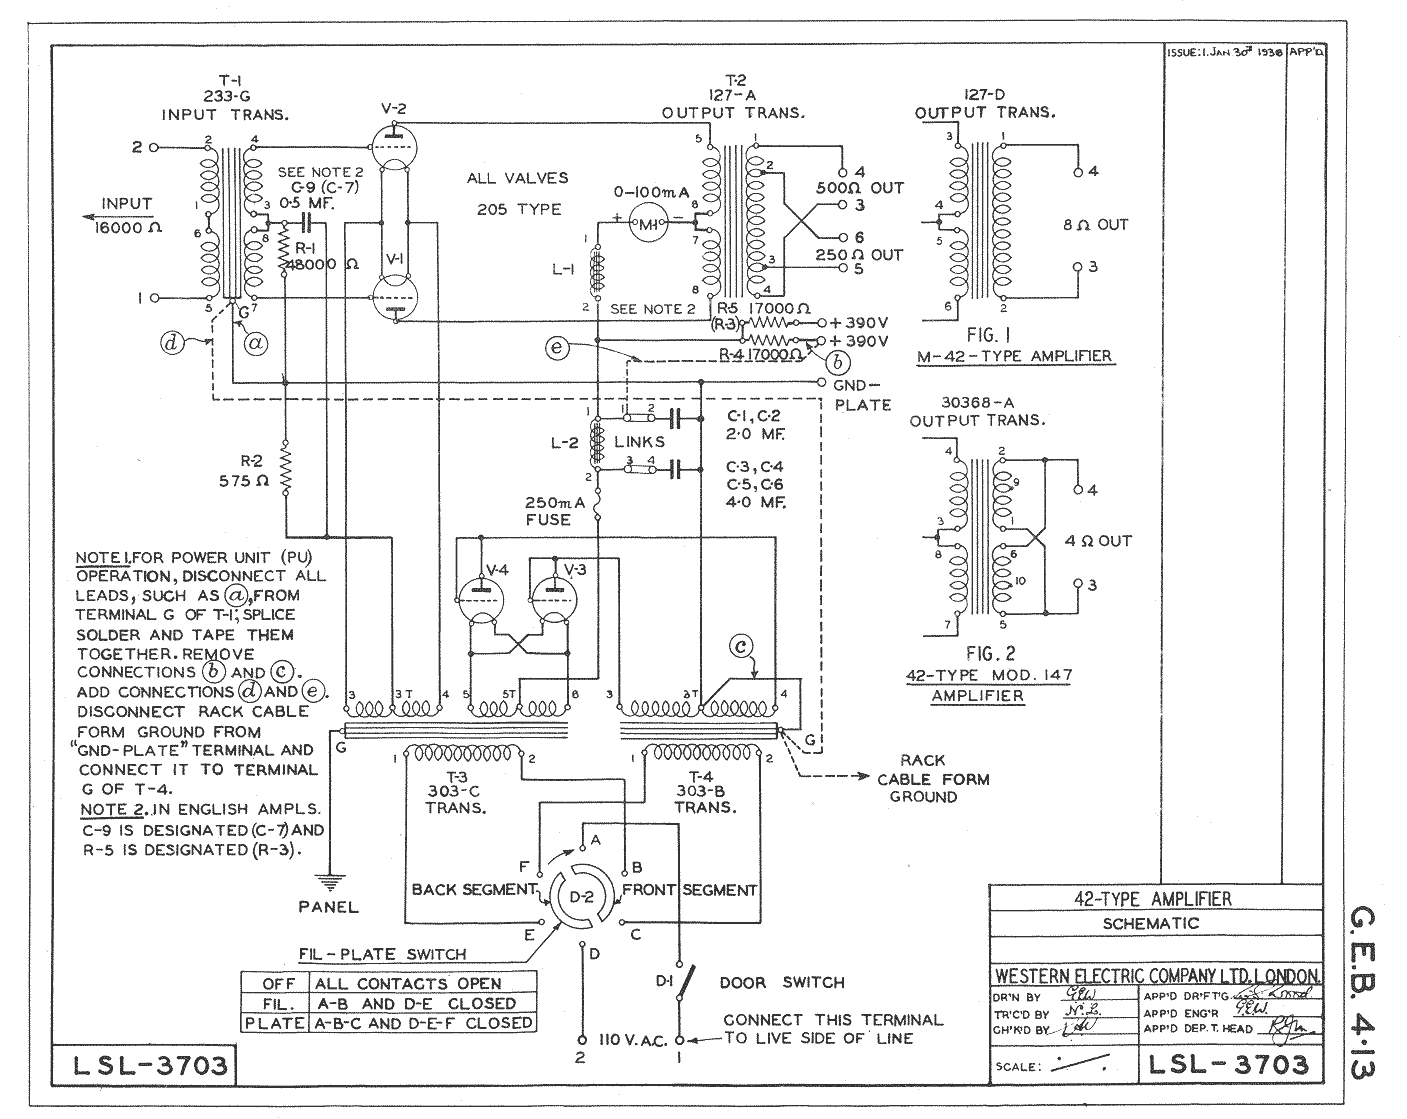 100 Amplifiers Part 1 1916 45 Lilienthal Engineering Figure Schematic Wiring Diagram Western Electric 42 Amplifier Original